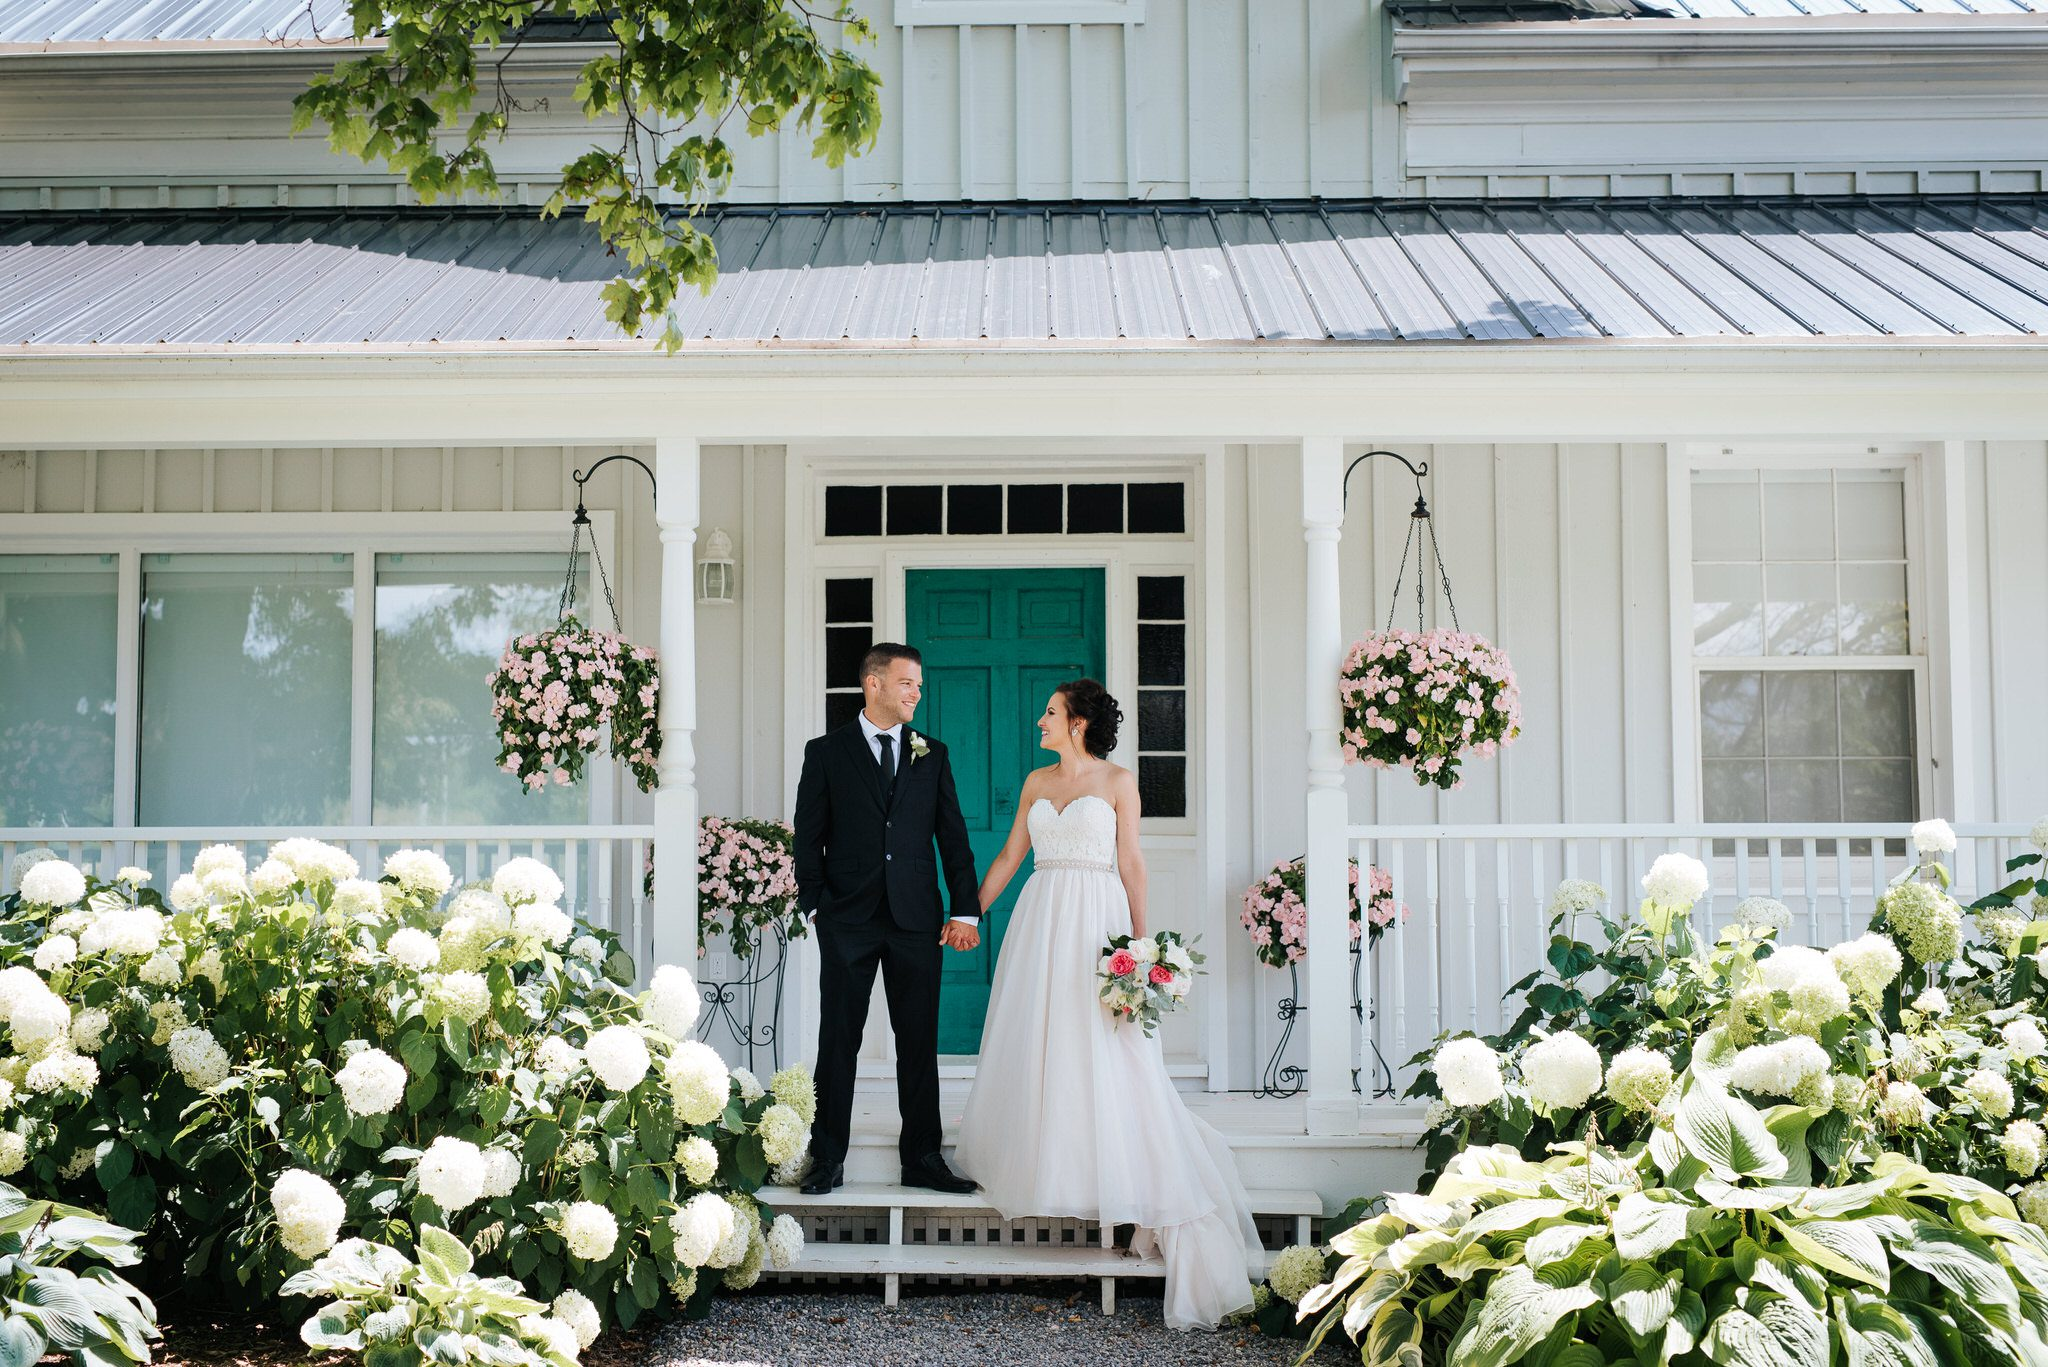 Bloomfield Gardens Wedding - bridal portraits white house teal door